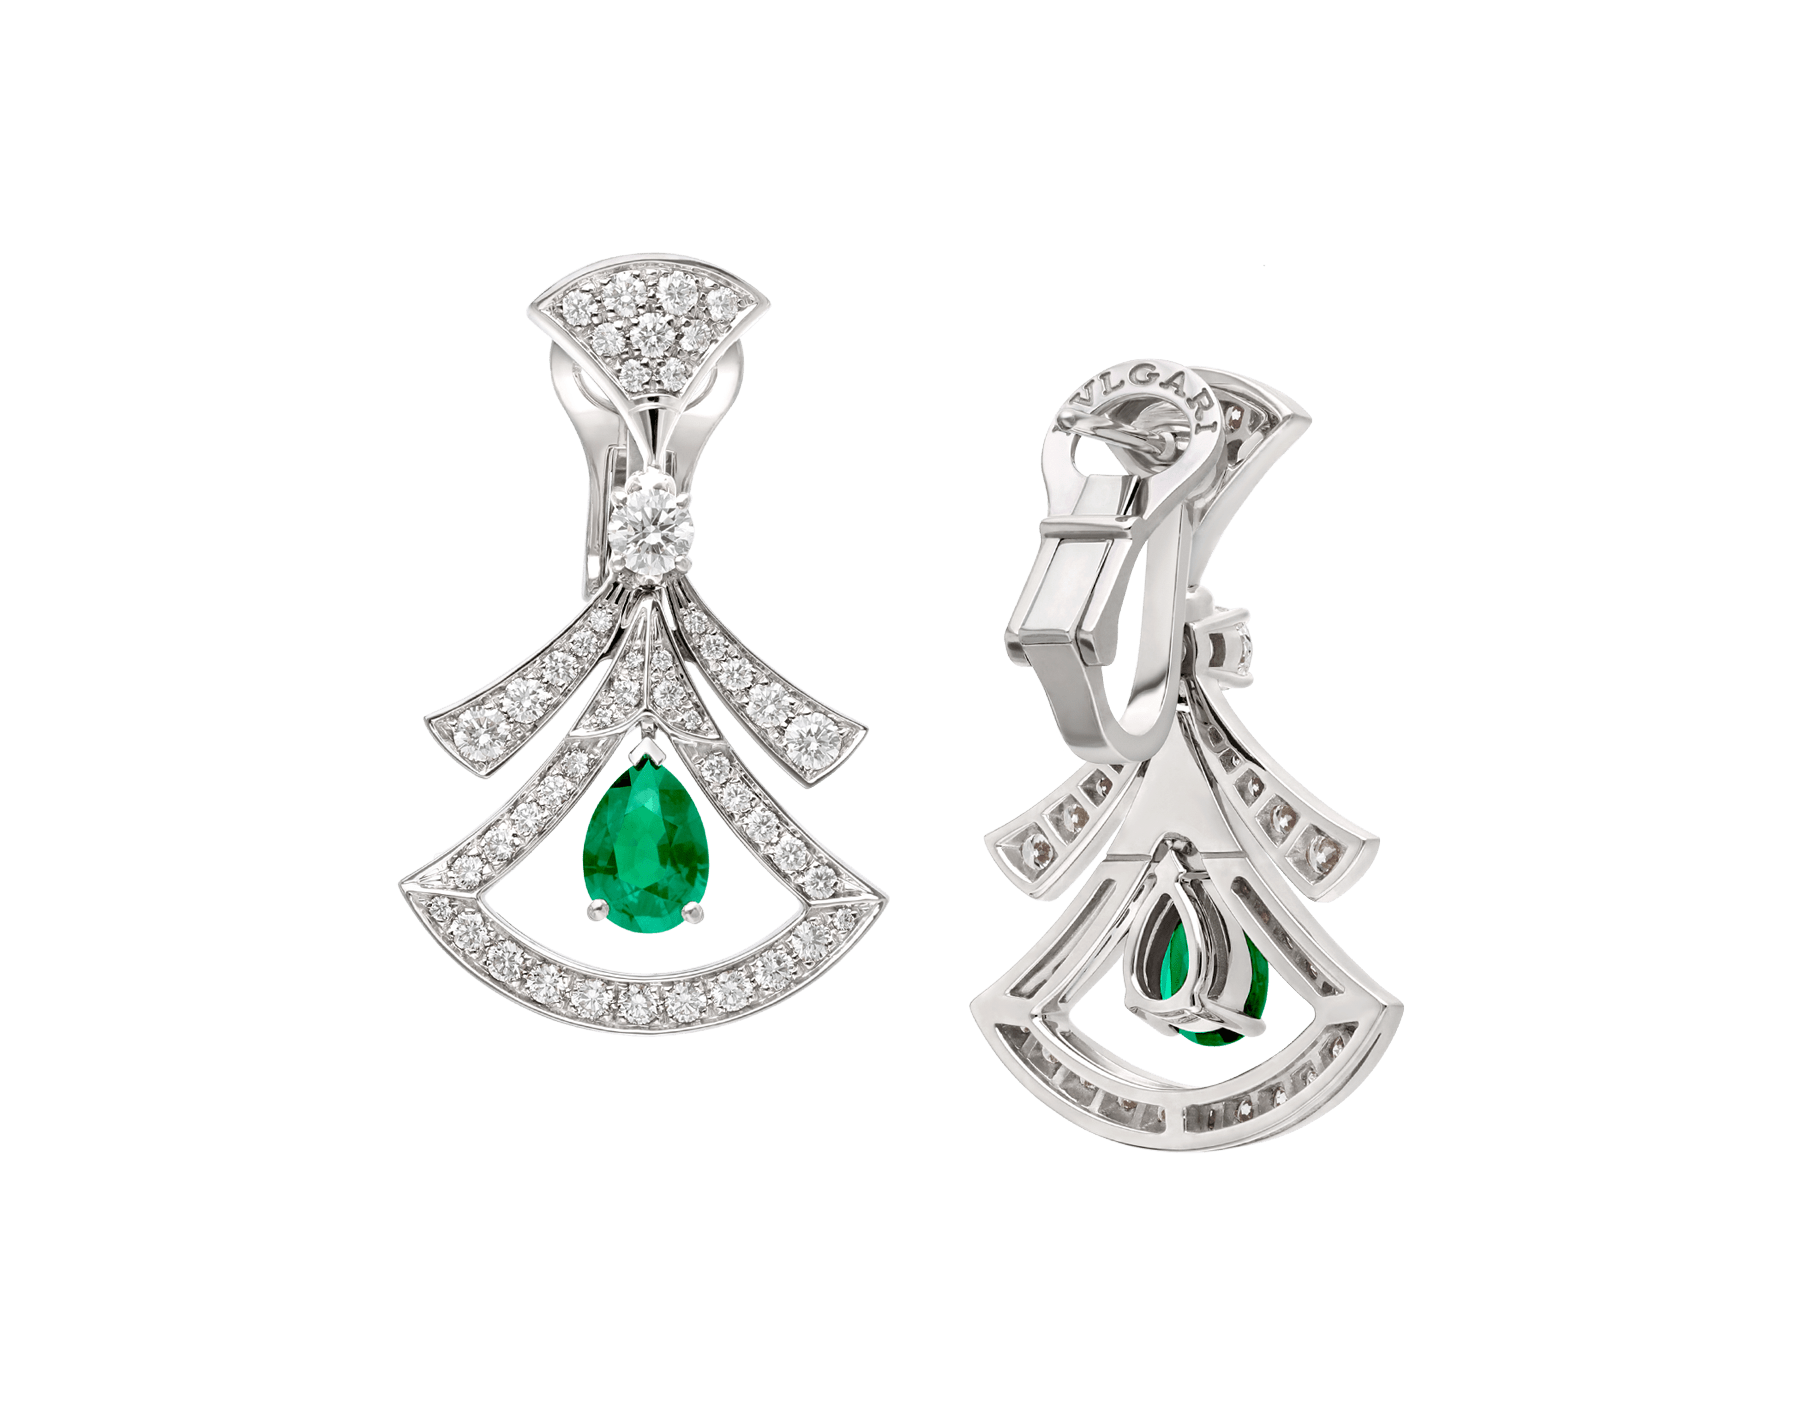 DIVAS' DREAM 18 kt white gold openwork earring set with pear-shaped emeralds, round brilliant-cut and pavé diamonds. 356956 image 3